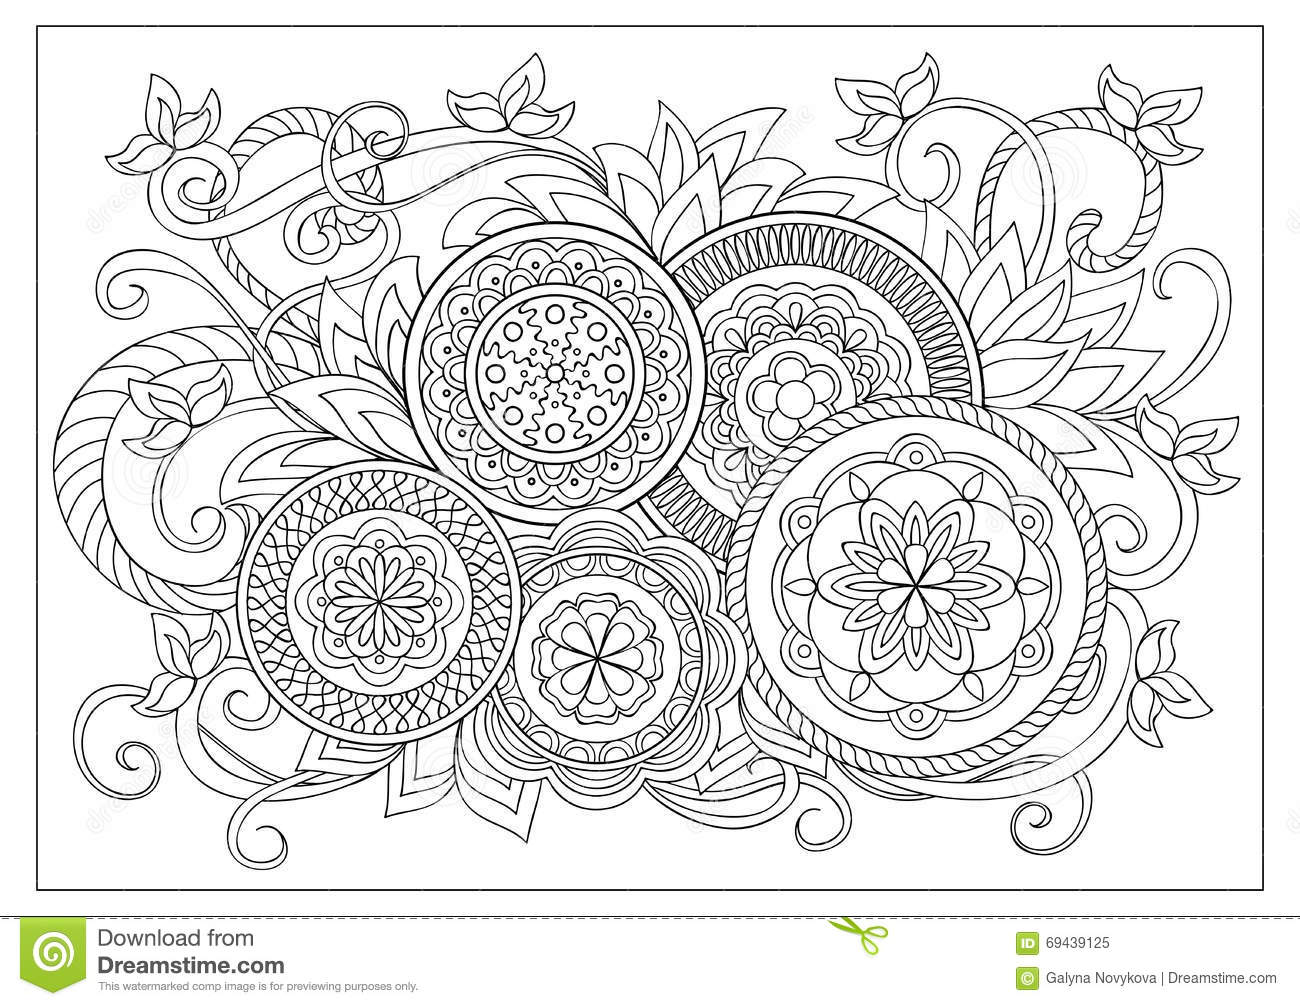 Download Image For Adult Coloring Page Stock Vector